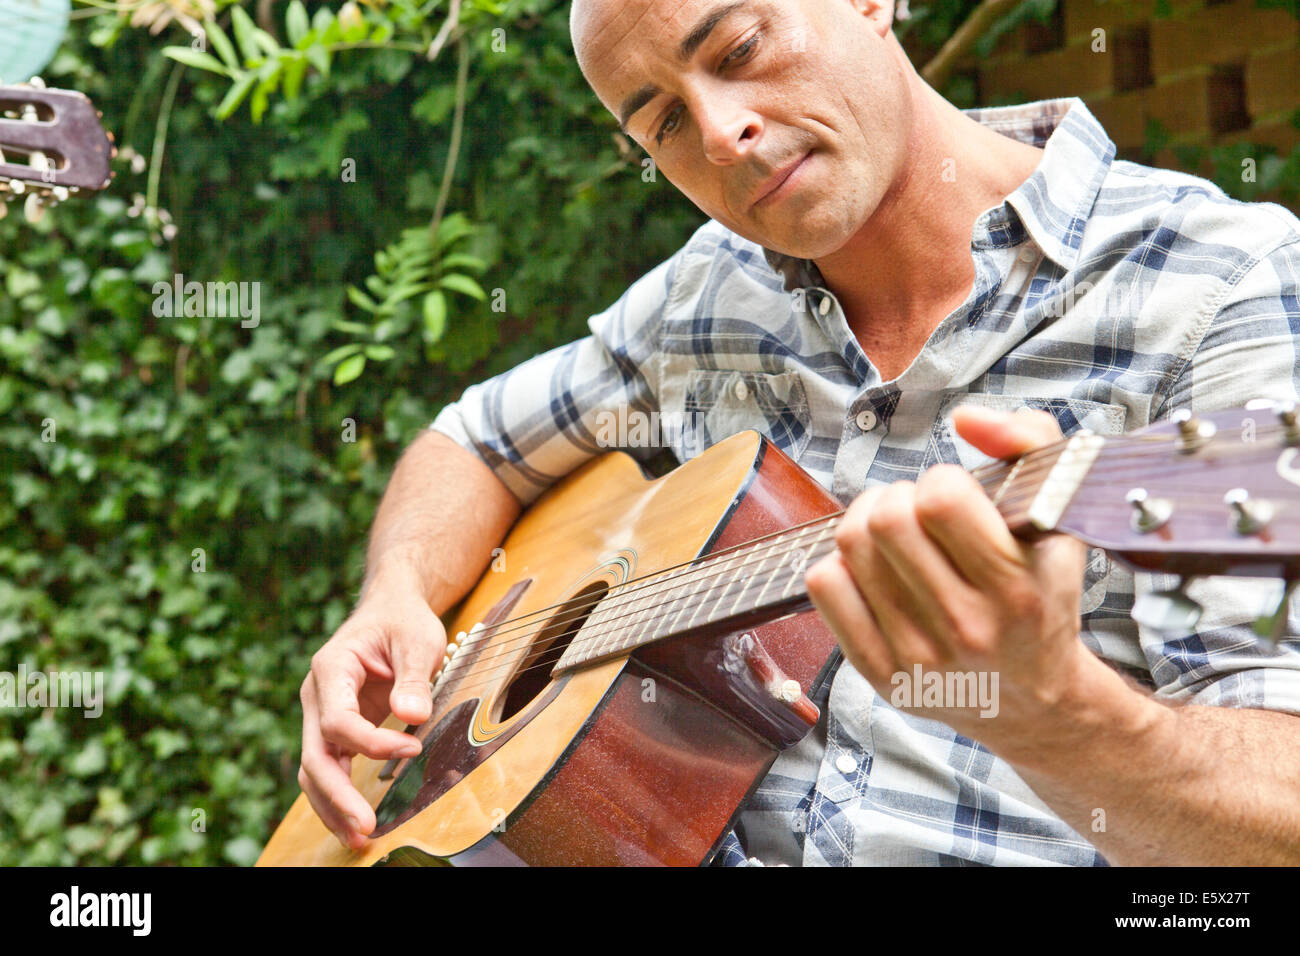 Mid adult man playing acoustic guitar in garden - Stock Image